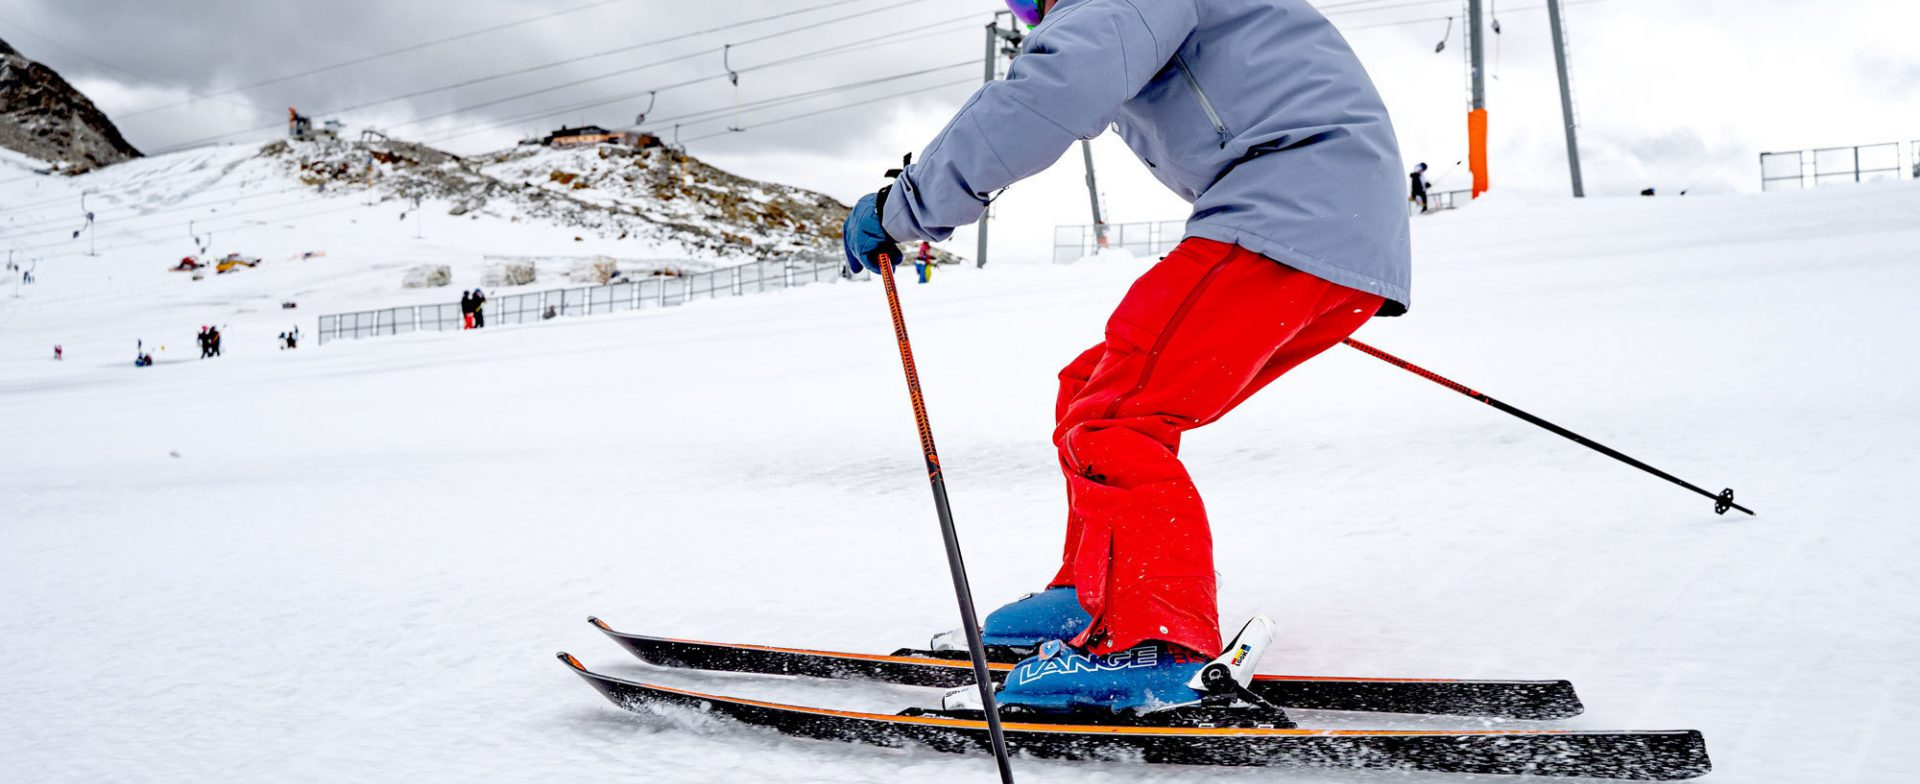 How To Ski On Ice 10 Steps For Skiing On Icy Slopes Carv